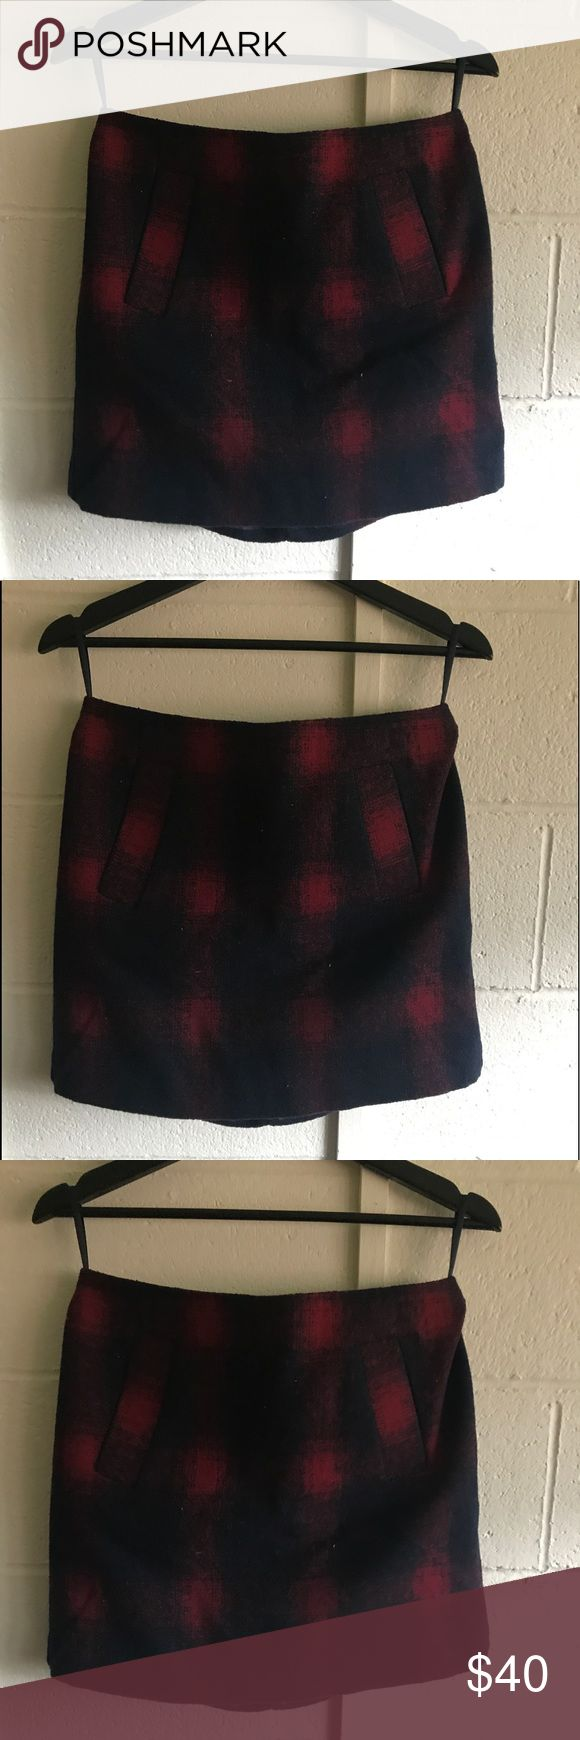 Vintage Gap Plaid Pencil Skirt NWOT Vintage gap, super chic! The outside has a very old-school wool type of fabric, but the inside is covered with a silky smooth inner layer so you don't feel itchy wearing it. The skirt goes down mid-thigh and has two front pockets! The zipper is in the back. Vintage Skirts Pencil